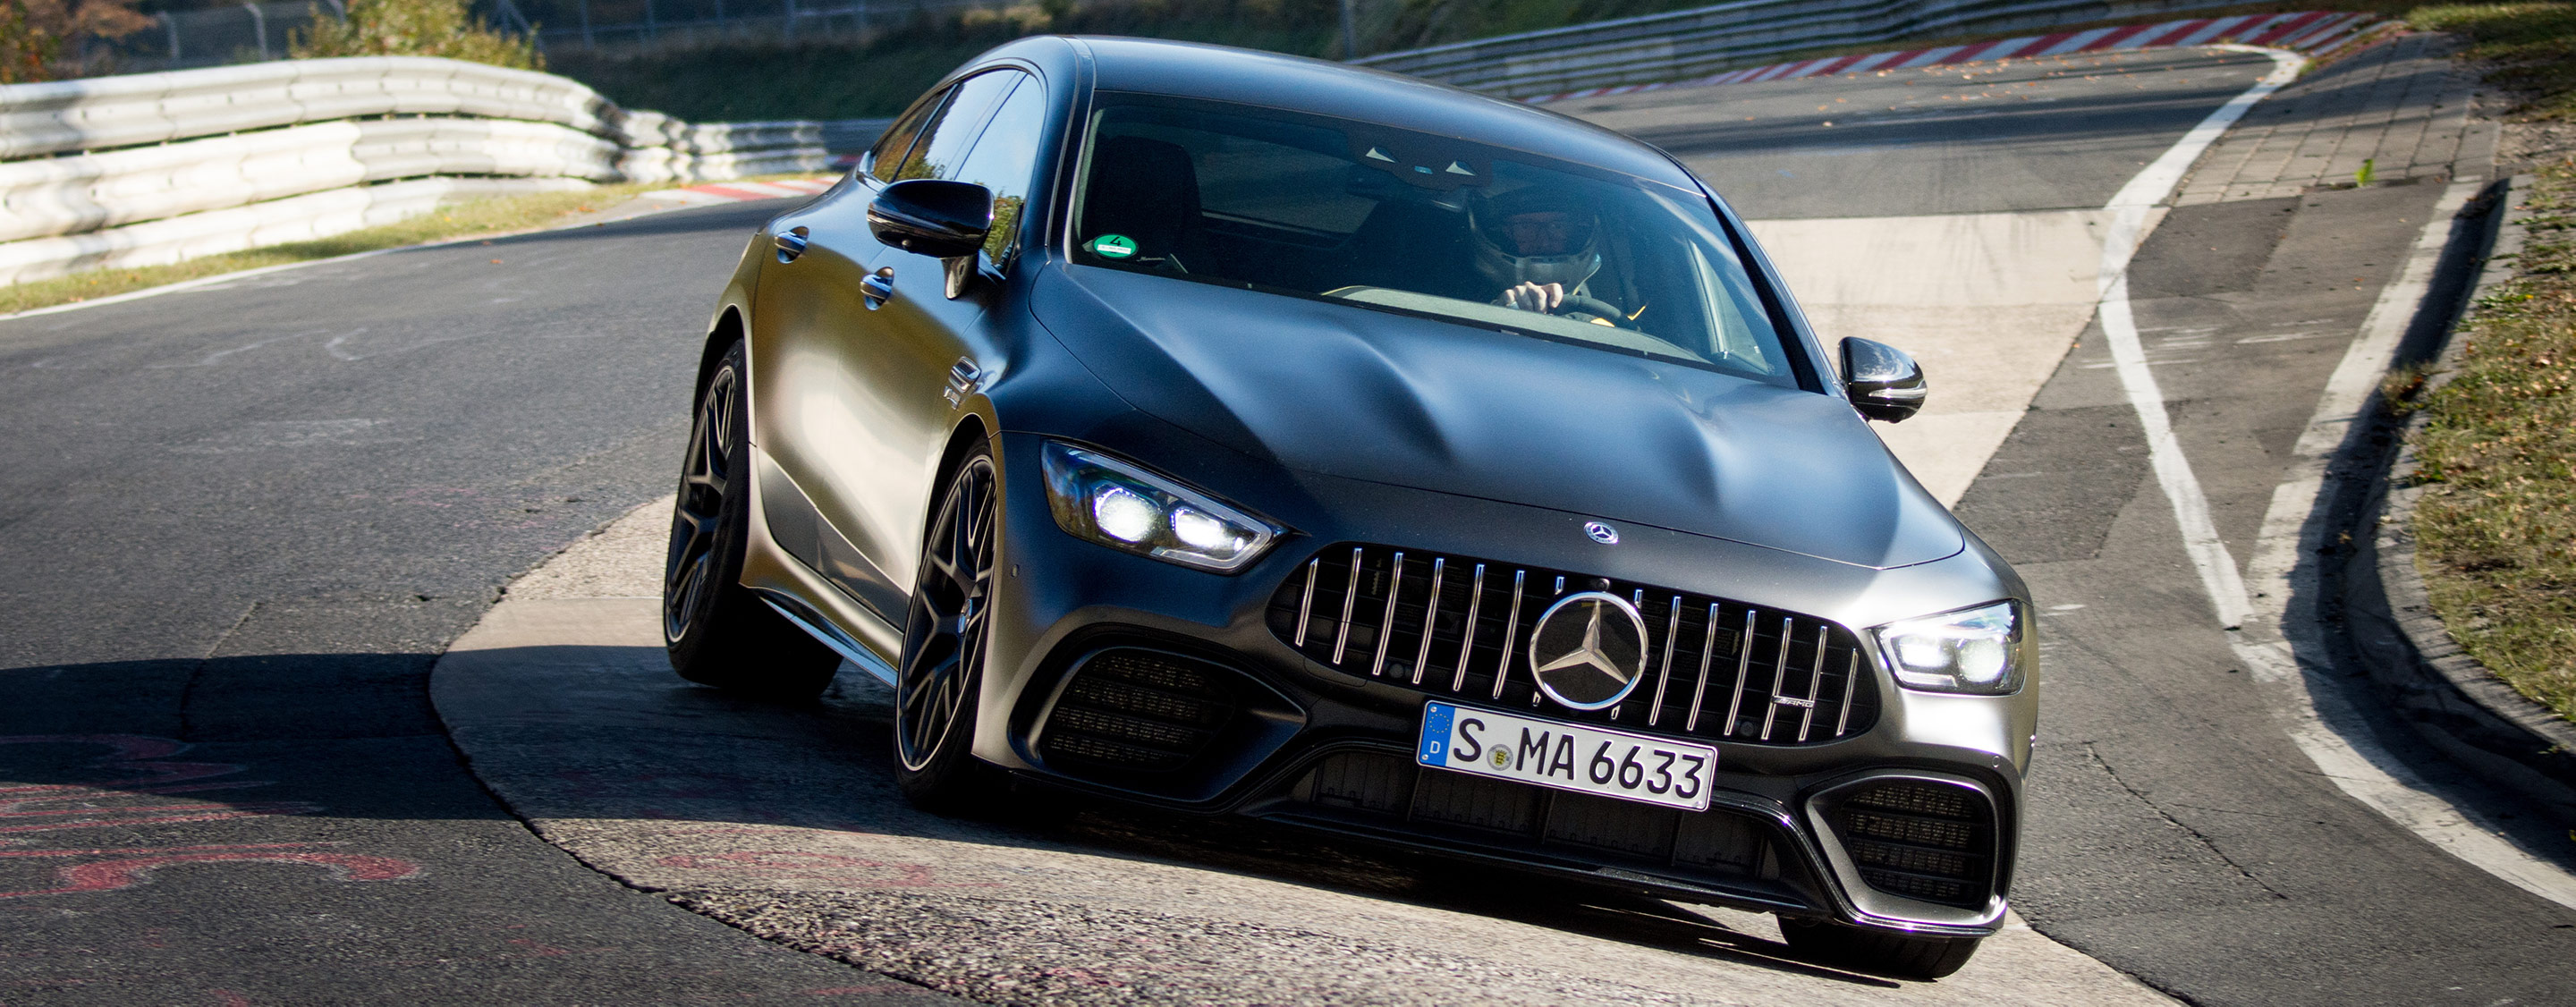 TrackWorthy - Mercedes-AMG GT 63 S 4MATIC+ (2)